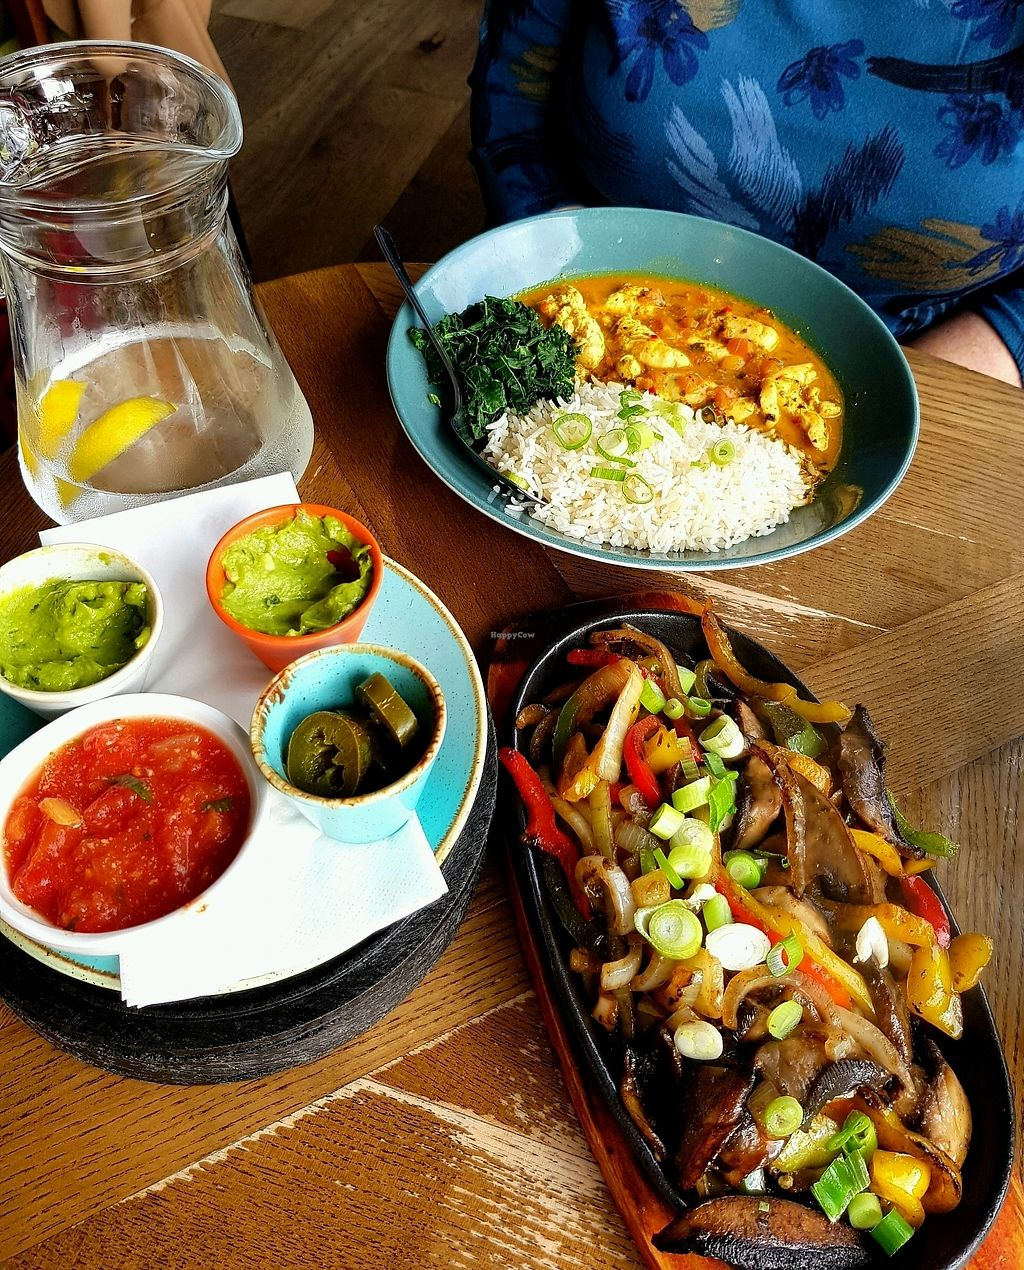 """Photo of Las Iguanas  by <a href=""""/members/profile/SanEH7"""">SanEH7</a> <br/>Delicious Vegan Options <br/> October 22, 2017  - <a href='/contact/abuse/image/58142/317607'>Report</a>"""